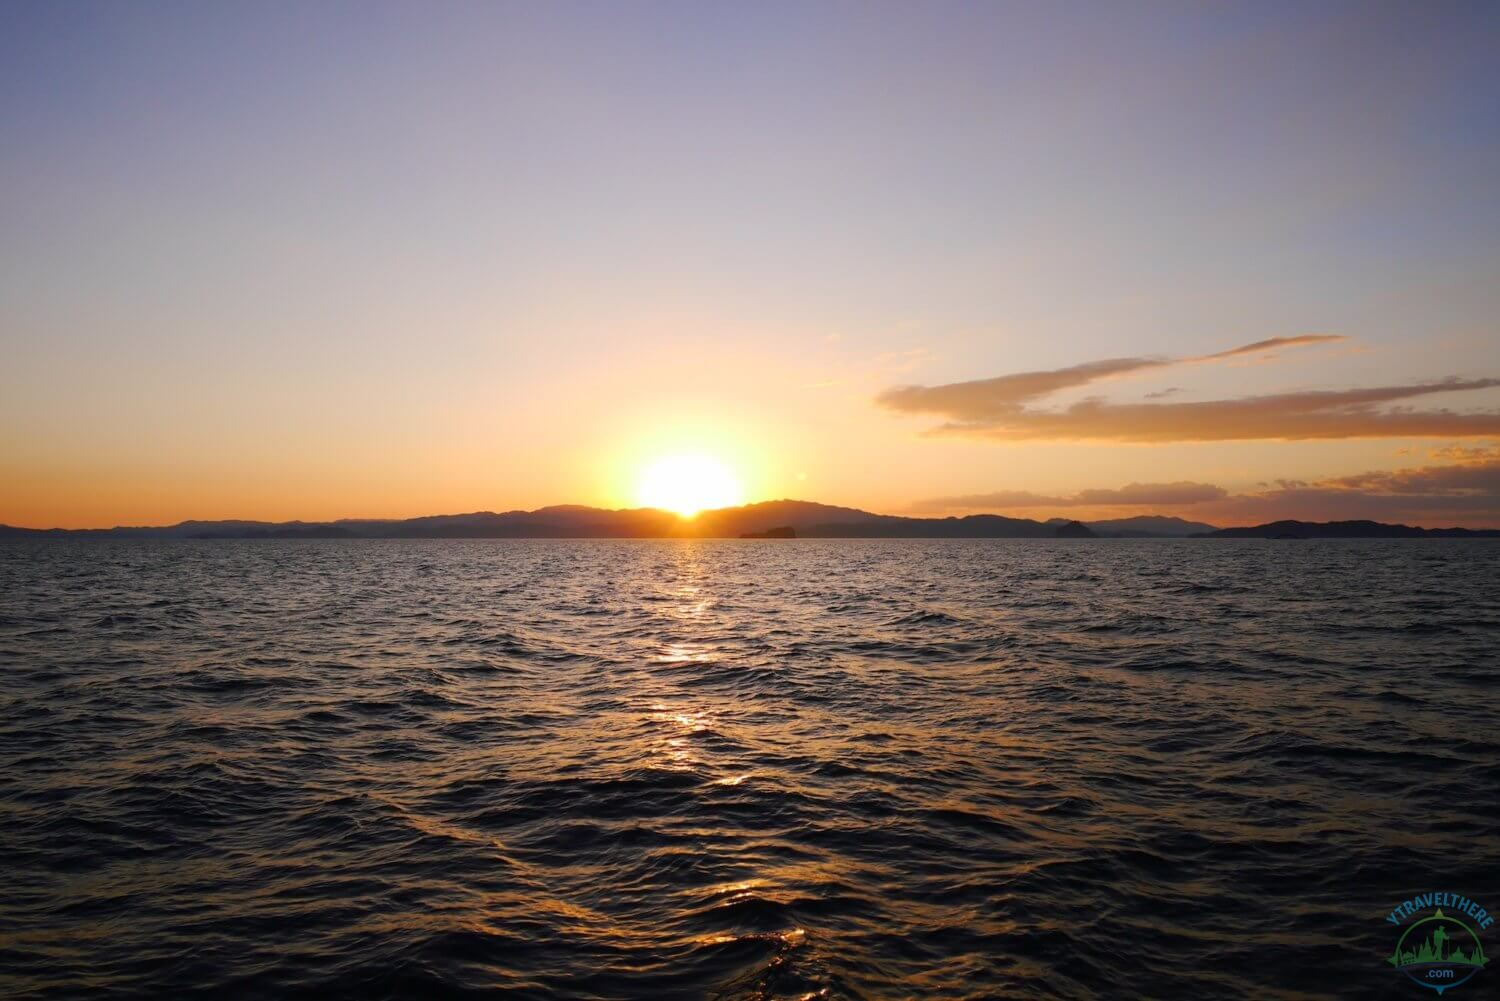 sunset Nicola peninsular, sunset cruise quepos, stunning sunsets